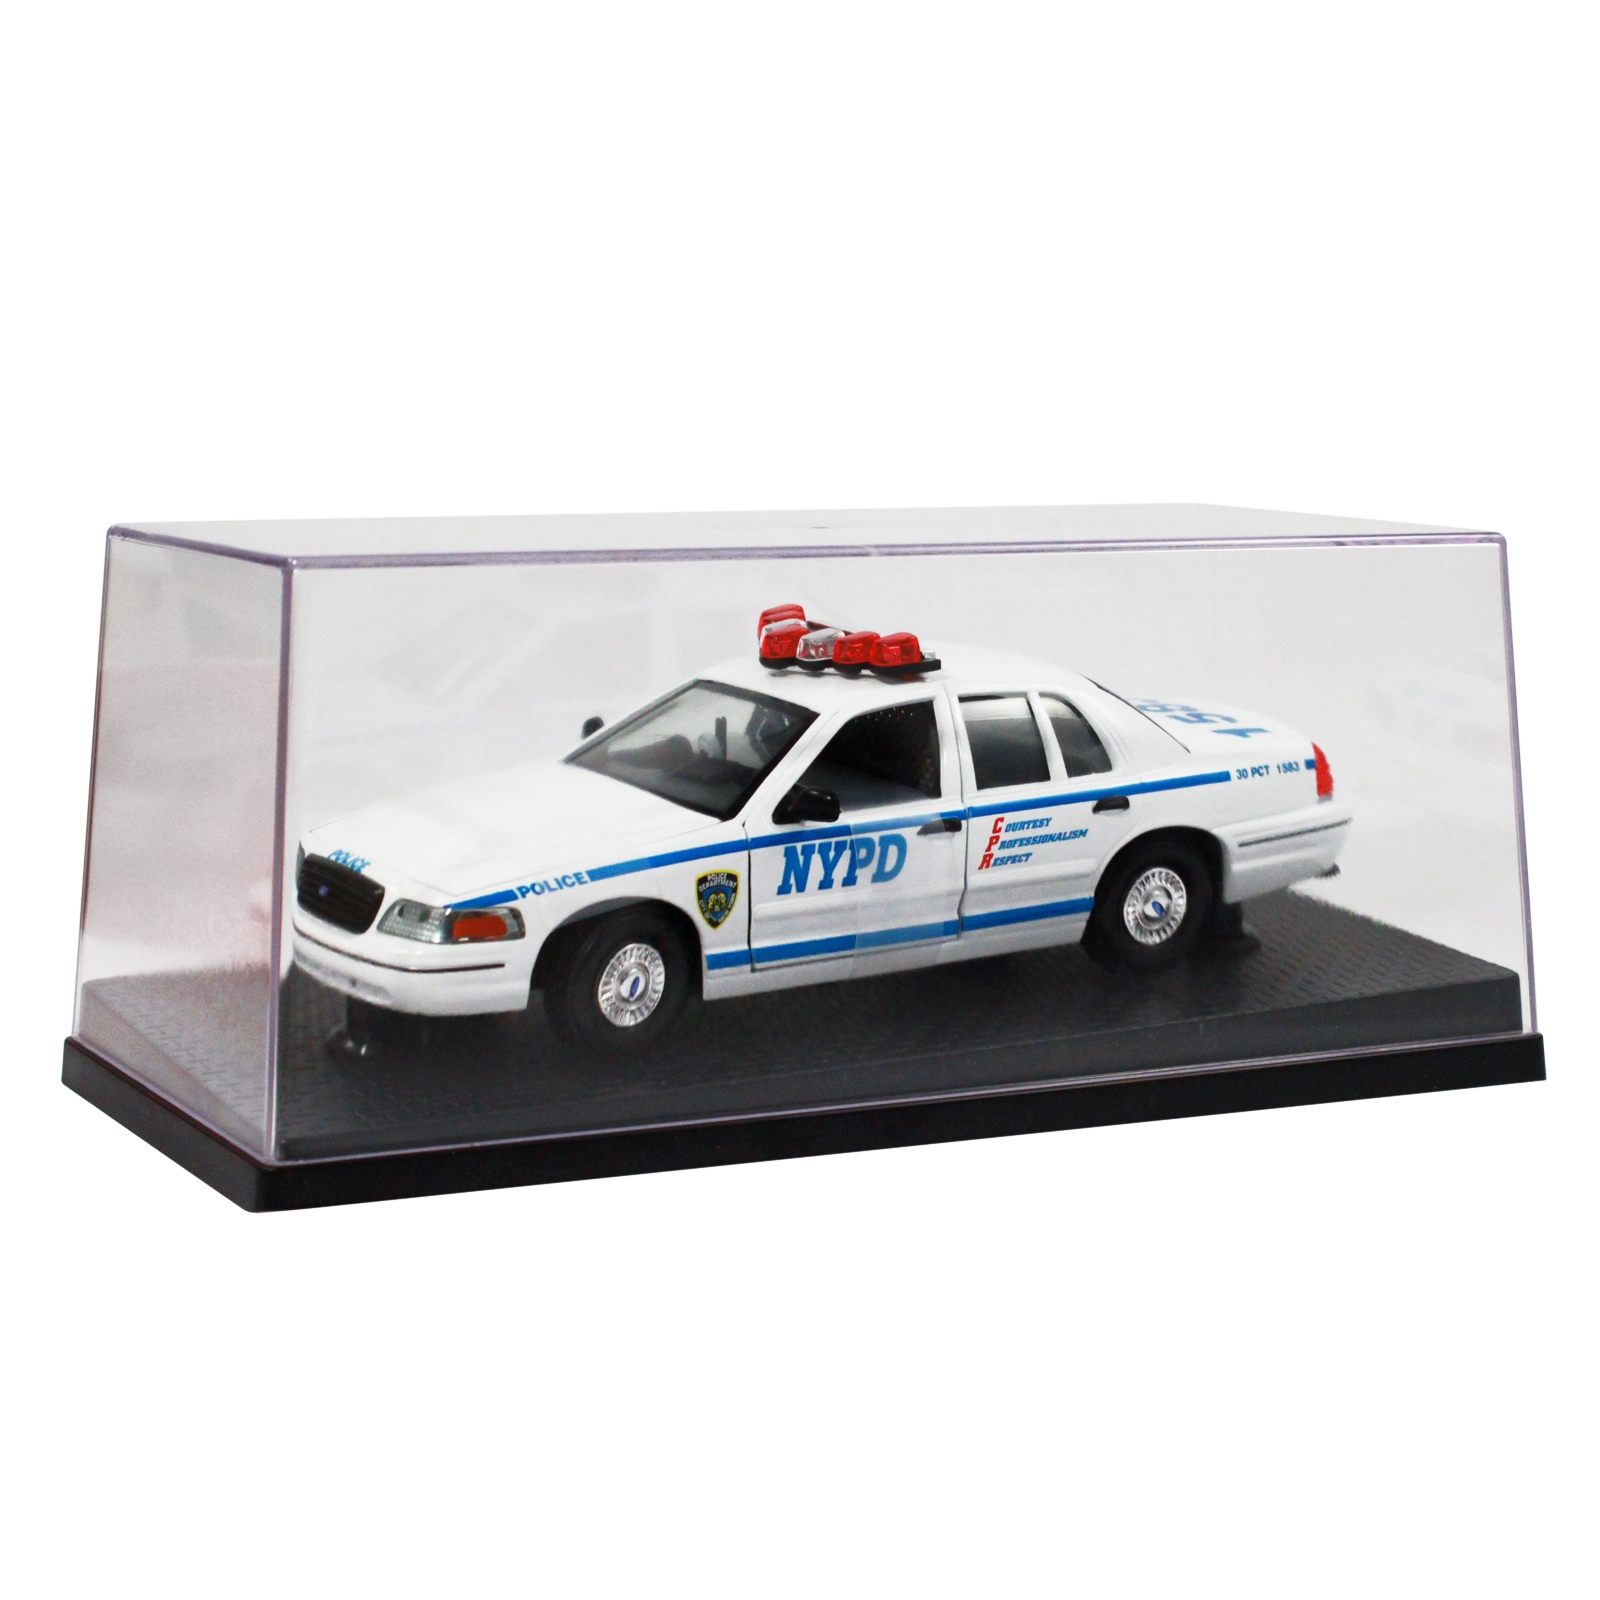 NYPD 1999 Ford Interceptor Police Car Replica 1:24 Scale